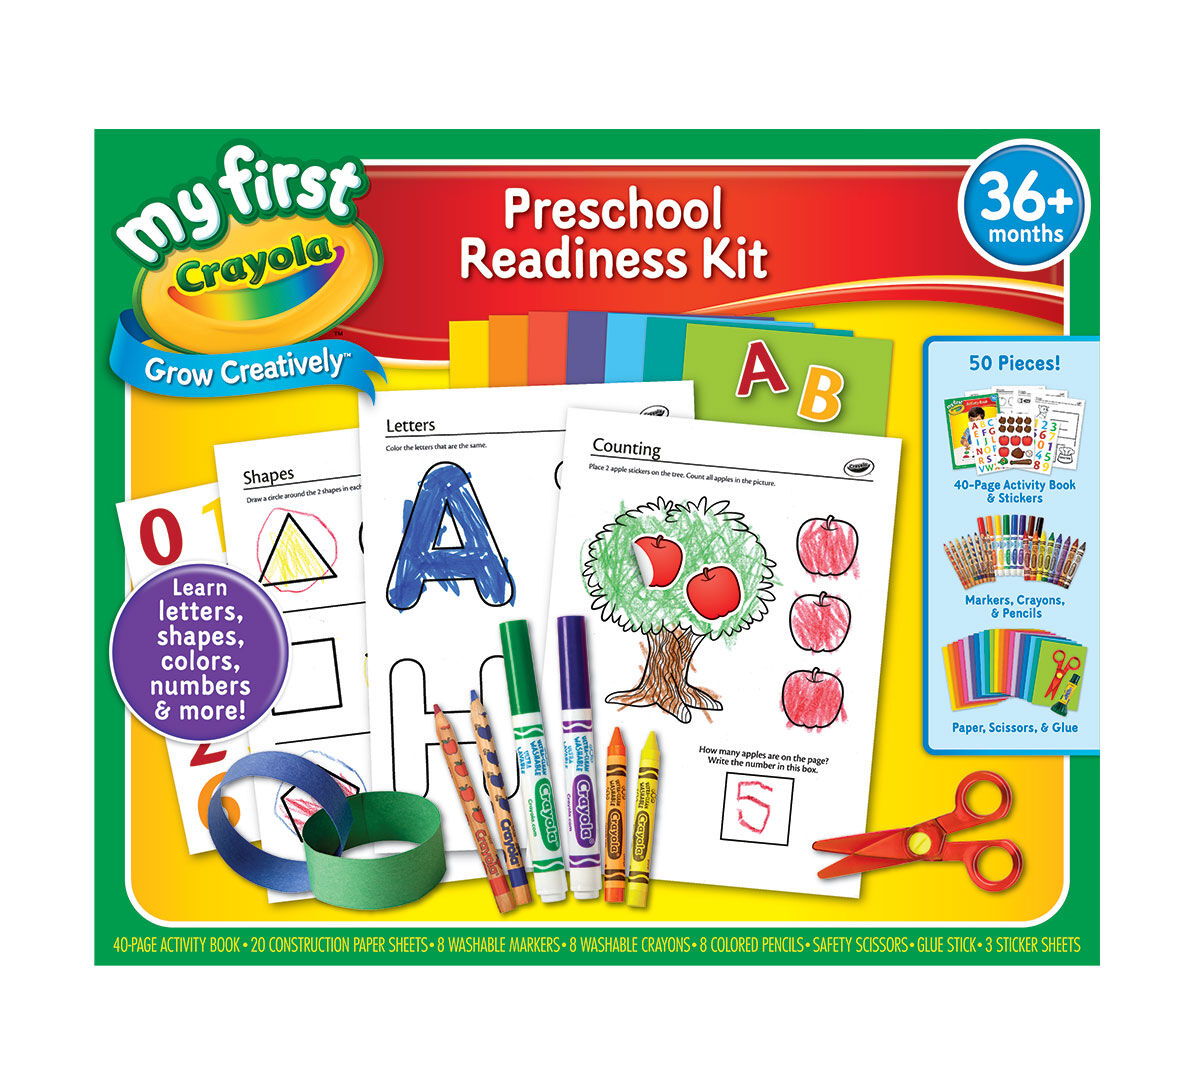 my first crayola preschool readiness kit all in one art tools and